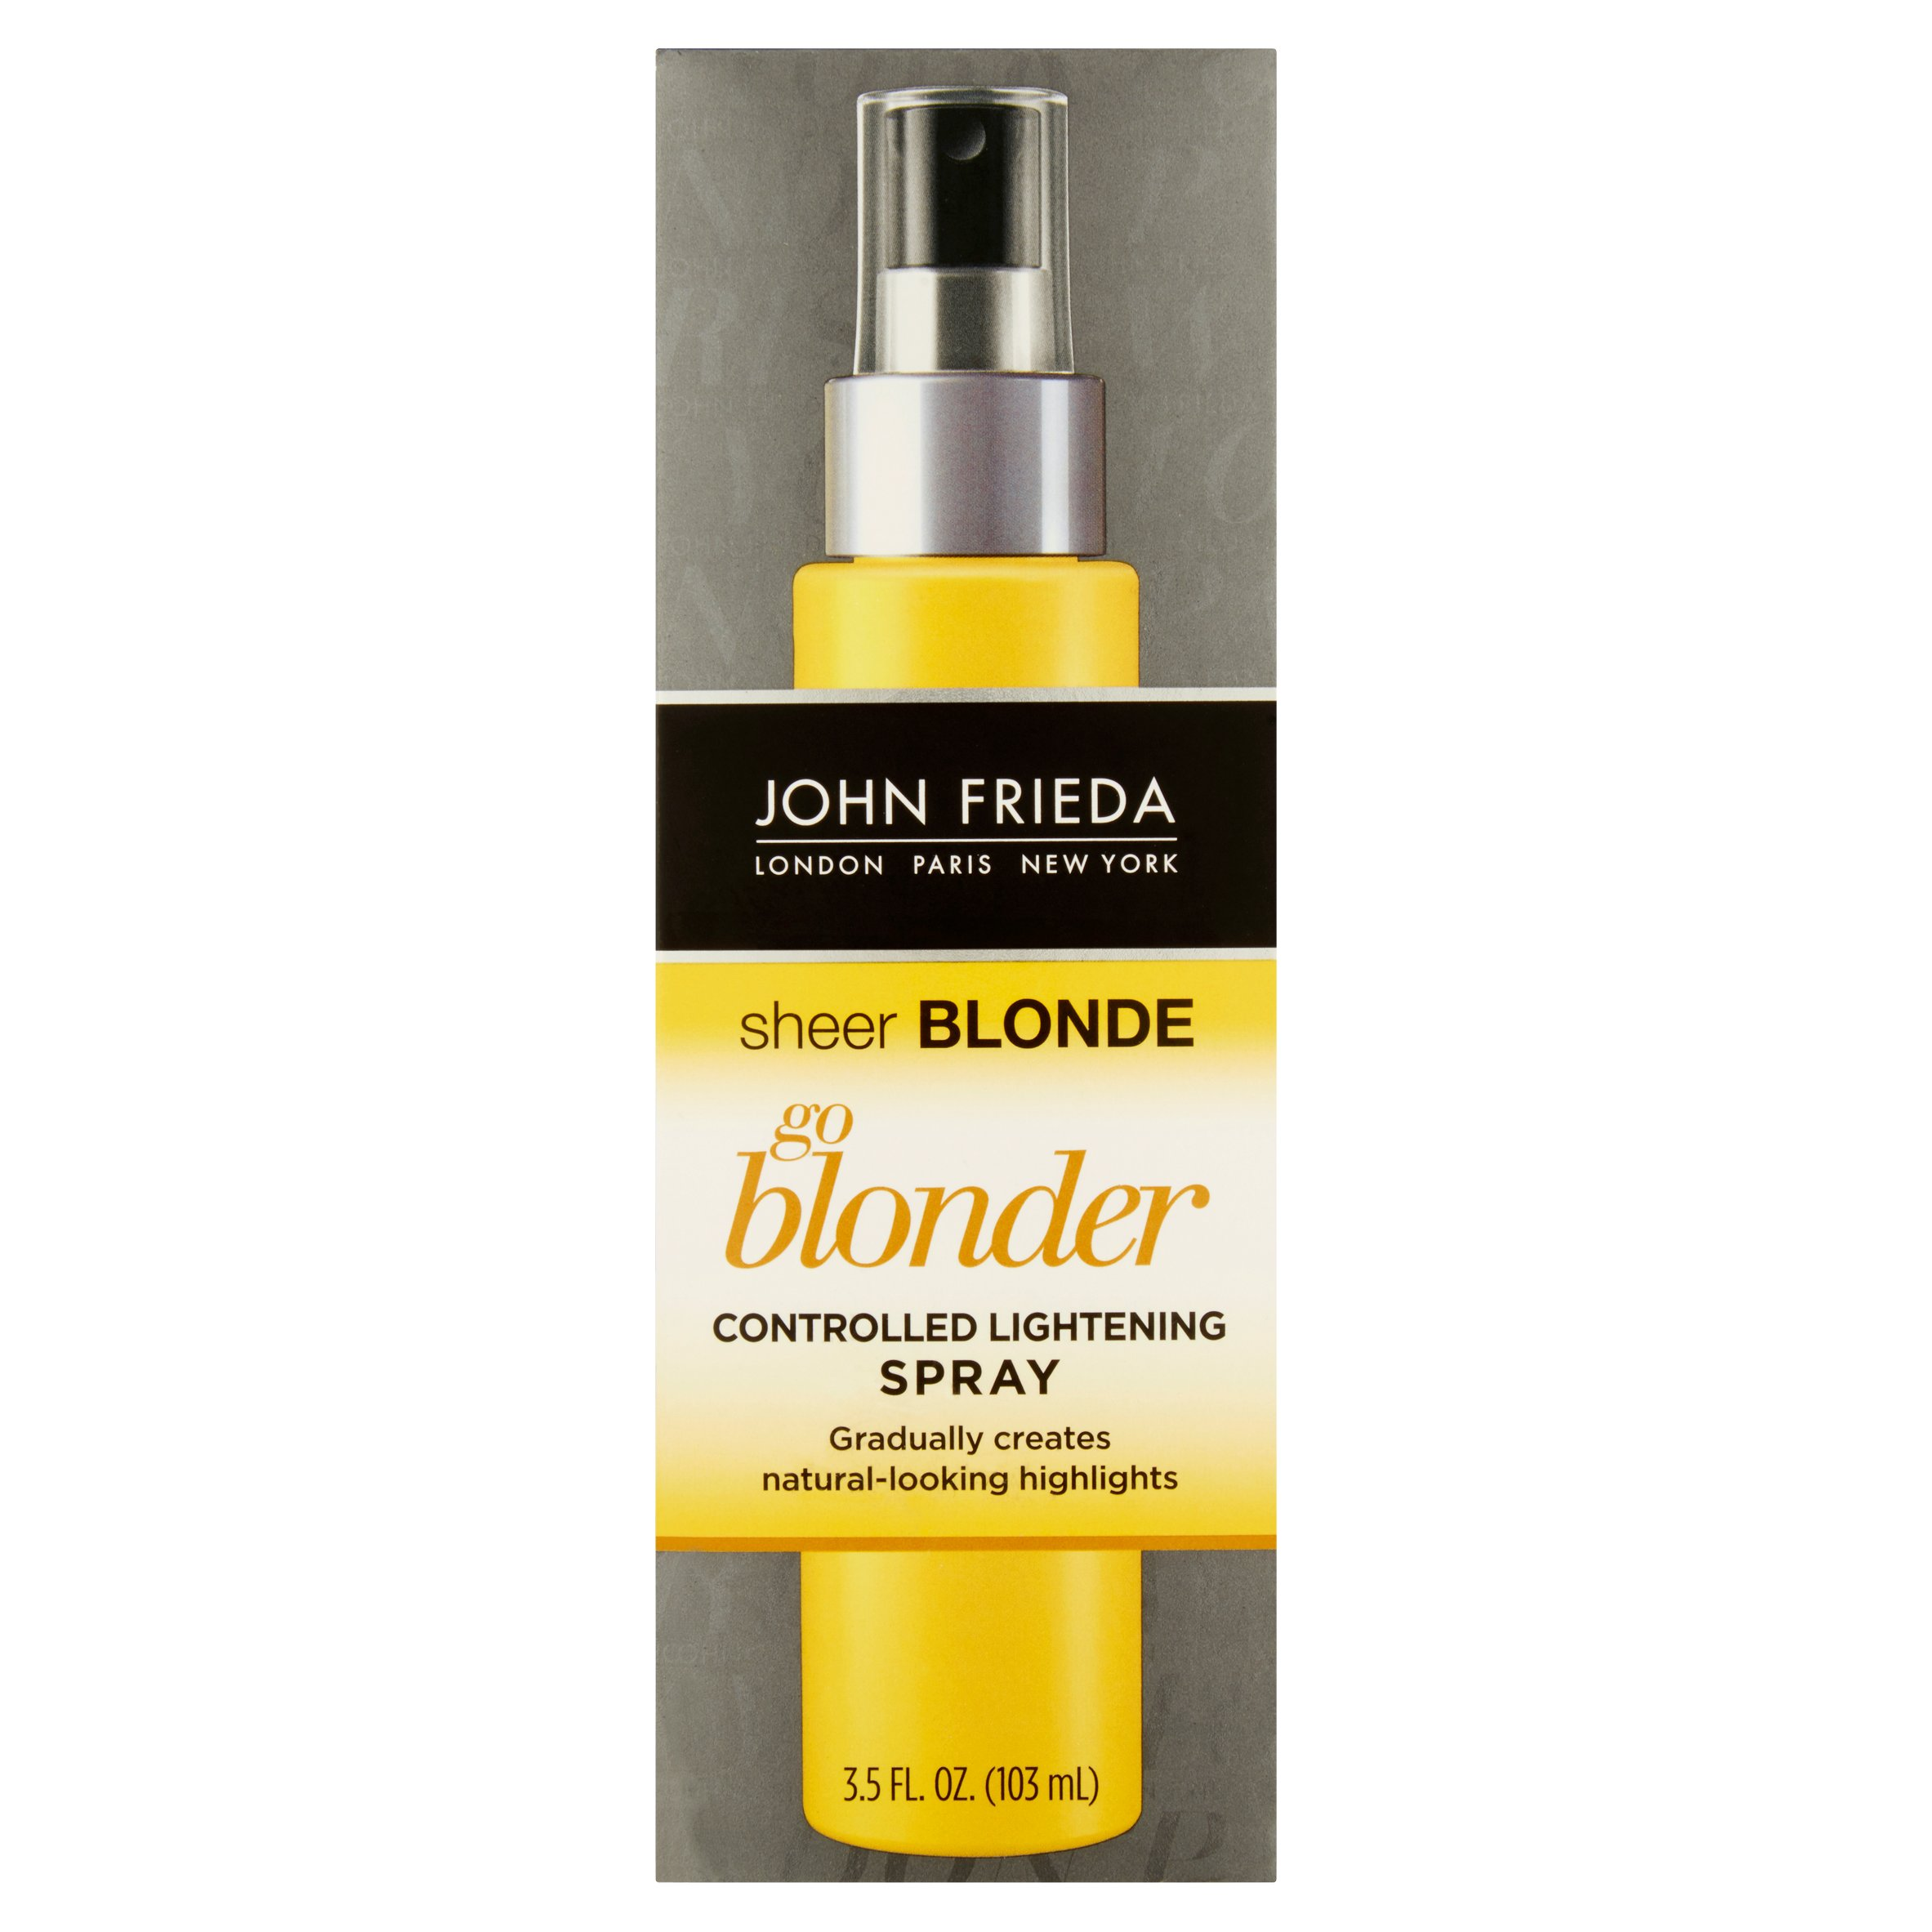 John Frieda Sheer Blonde Go Blonder Controlled Lightening Spray, 3.5 Fl Oz